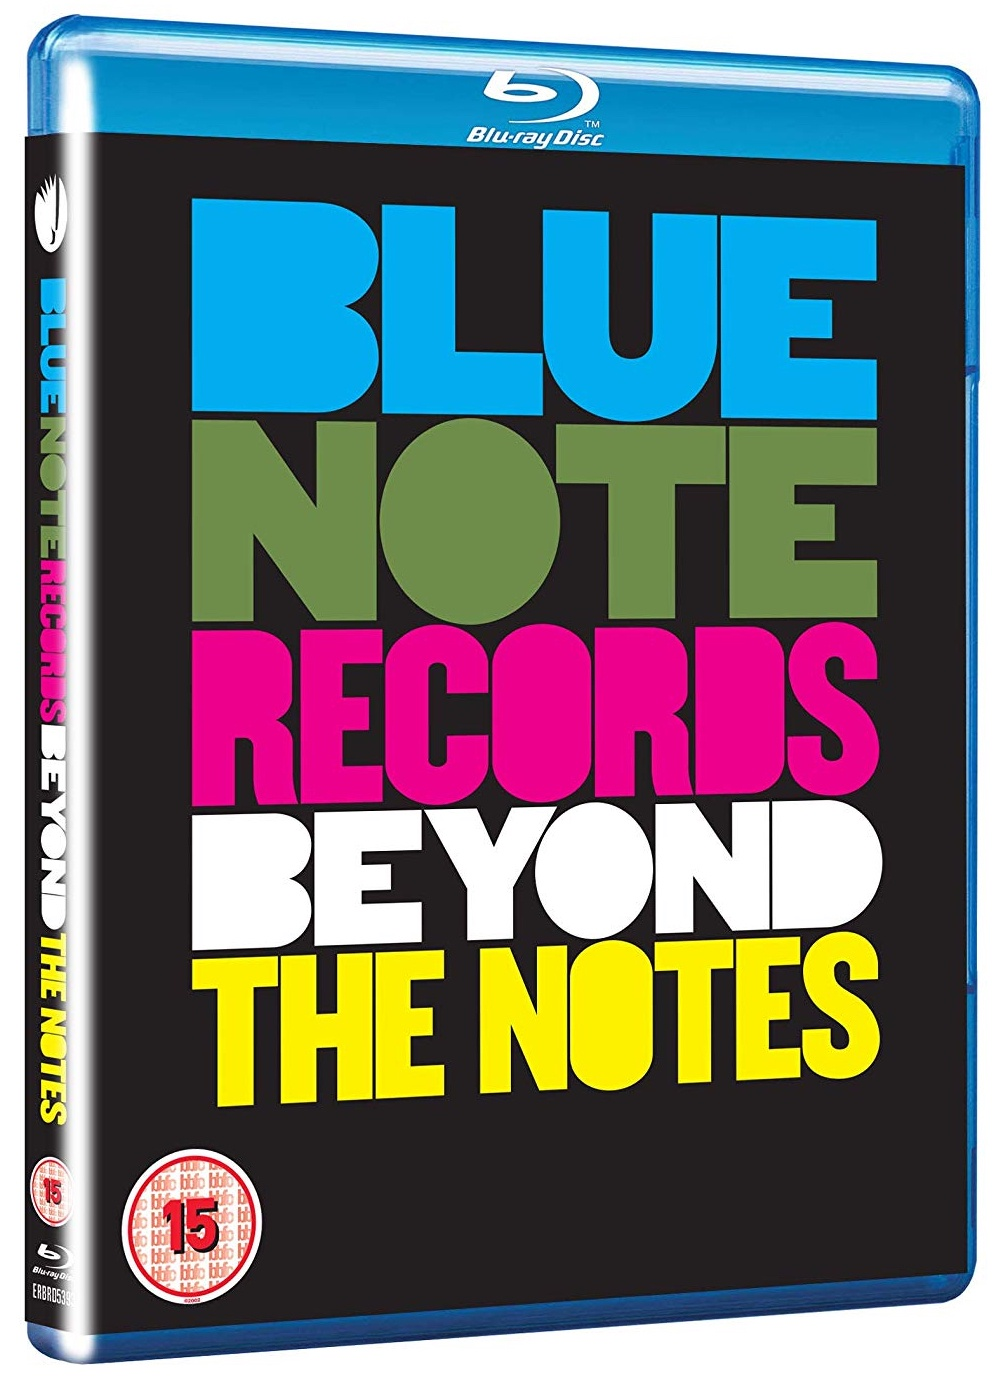 BLUE NOTE RECORDS -BEYOND THE NOTES [BLU-RAY]